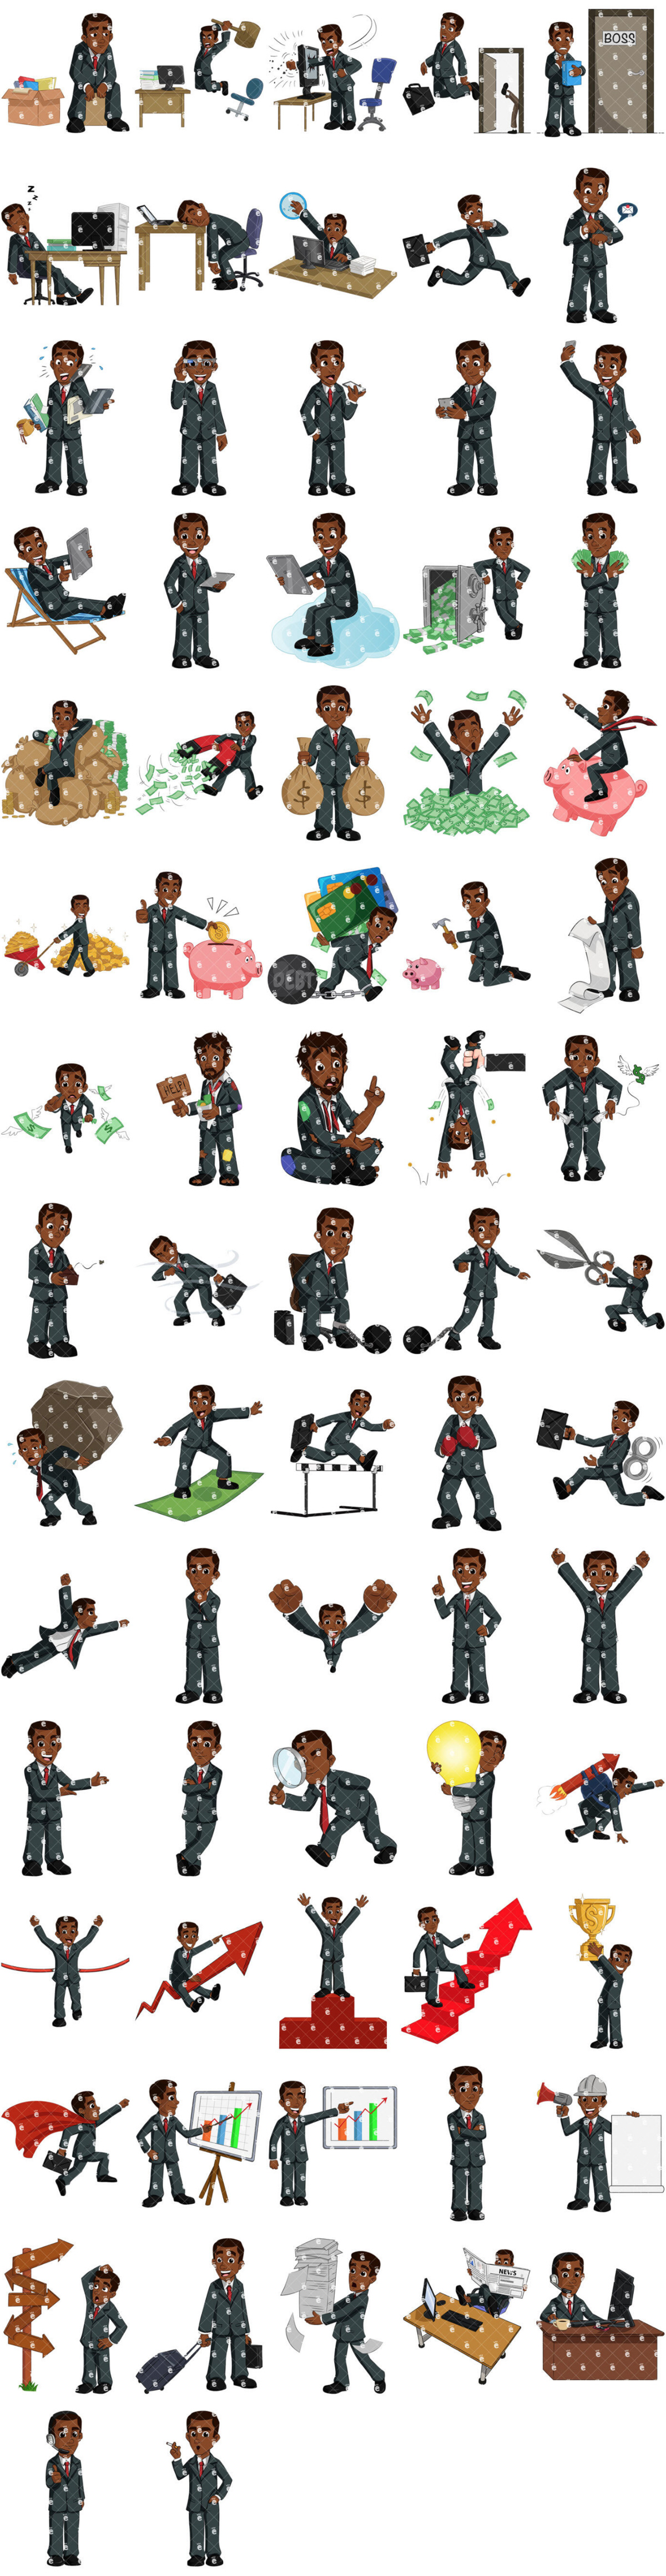 Preview Of The 72 Poses Of Samuel The Black Businessman